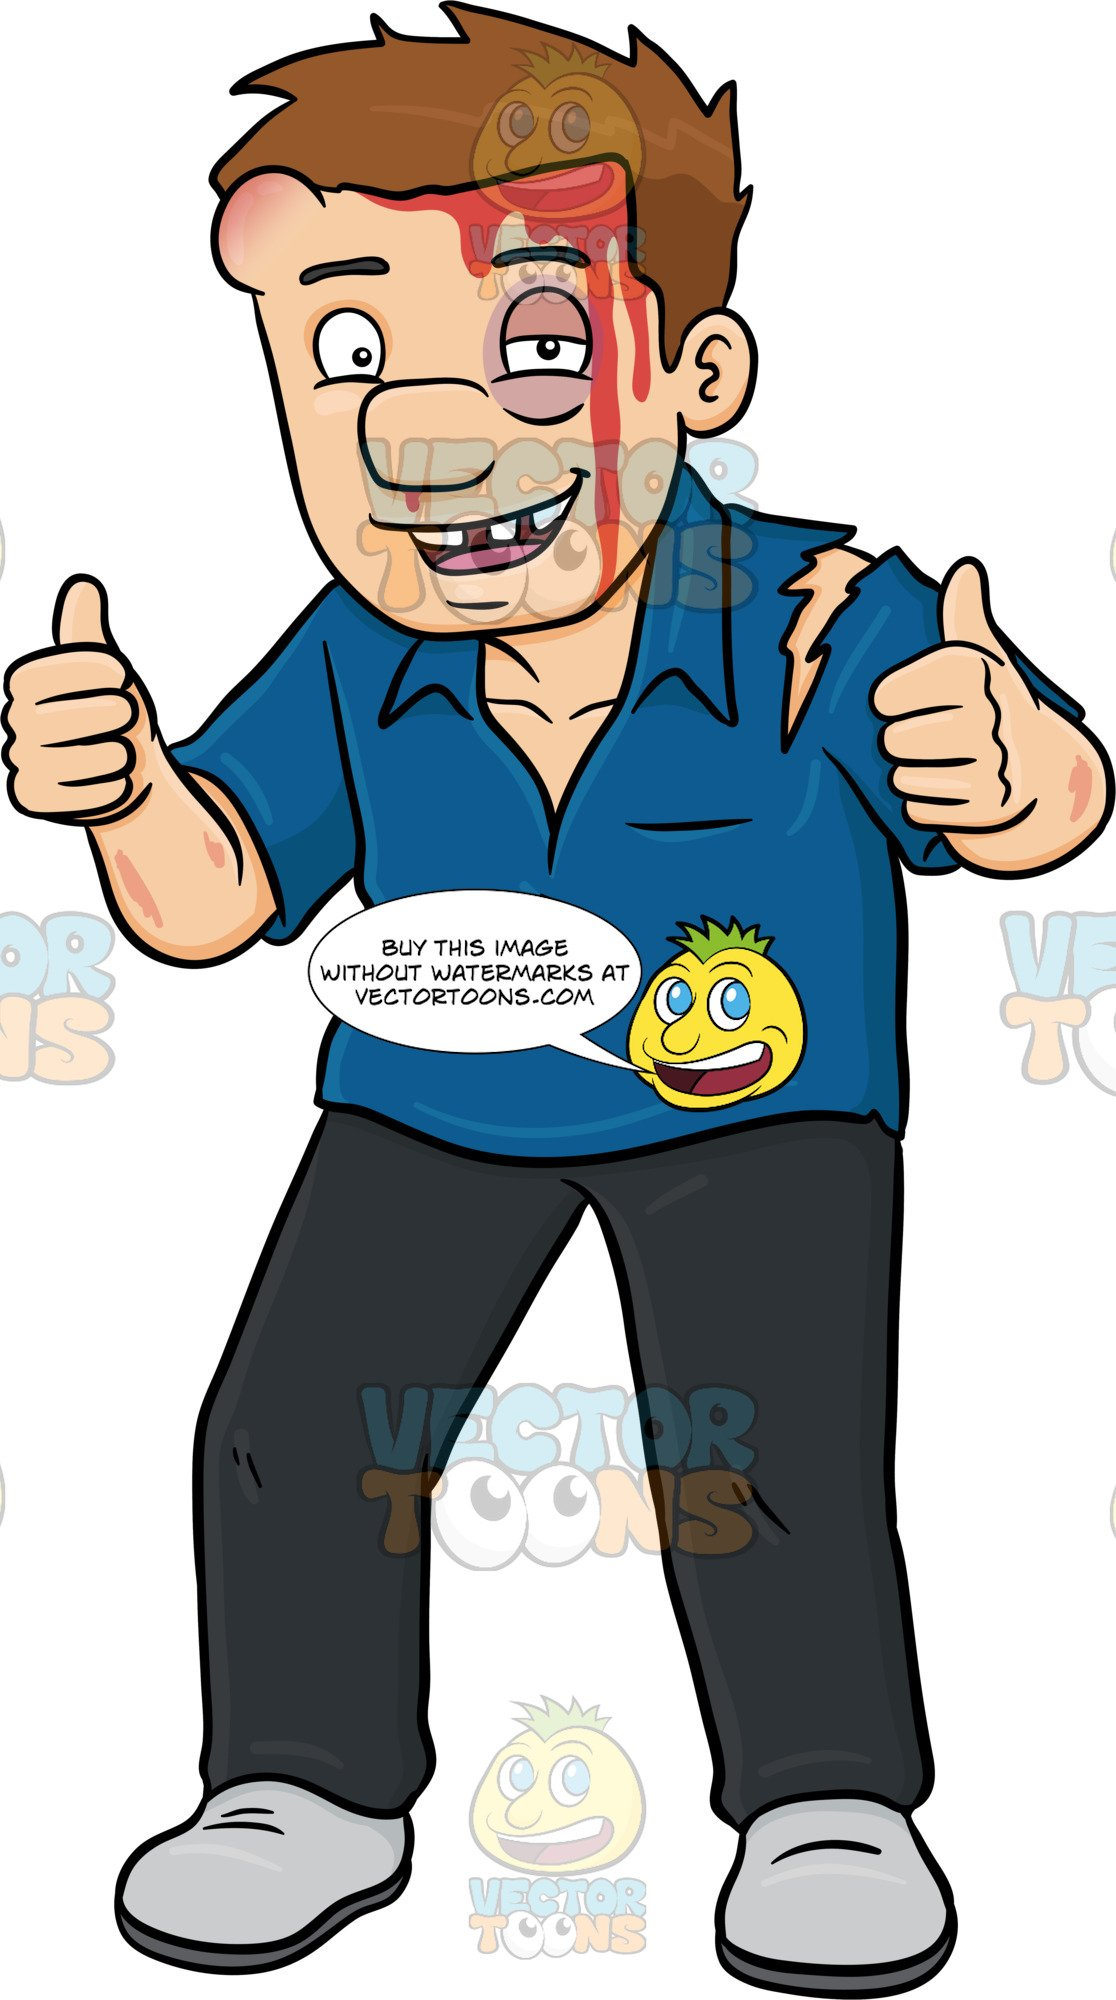 Injury clipart obvious. A man saying he